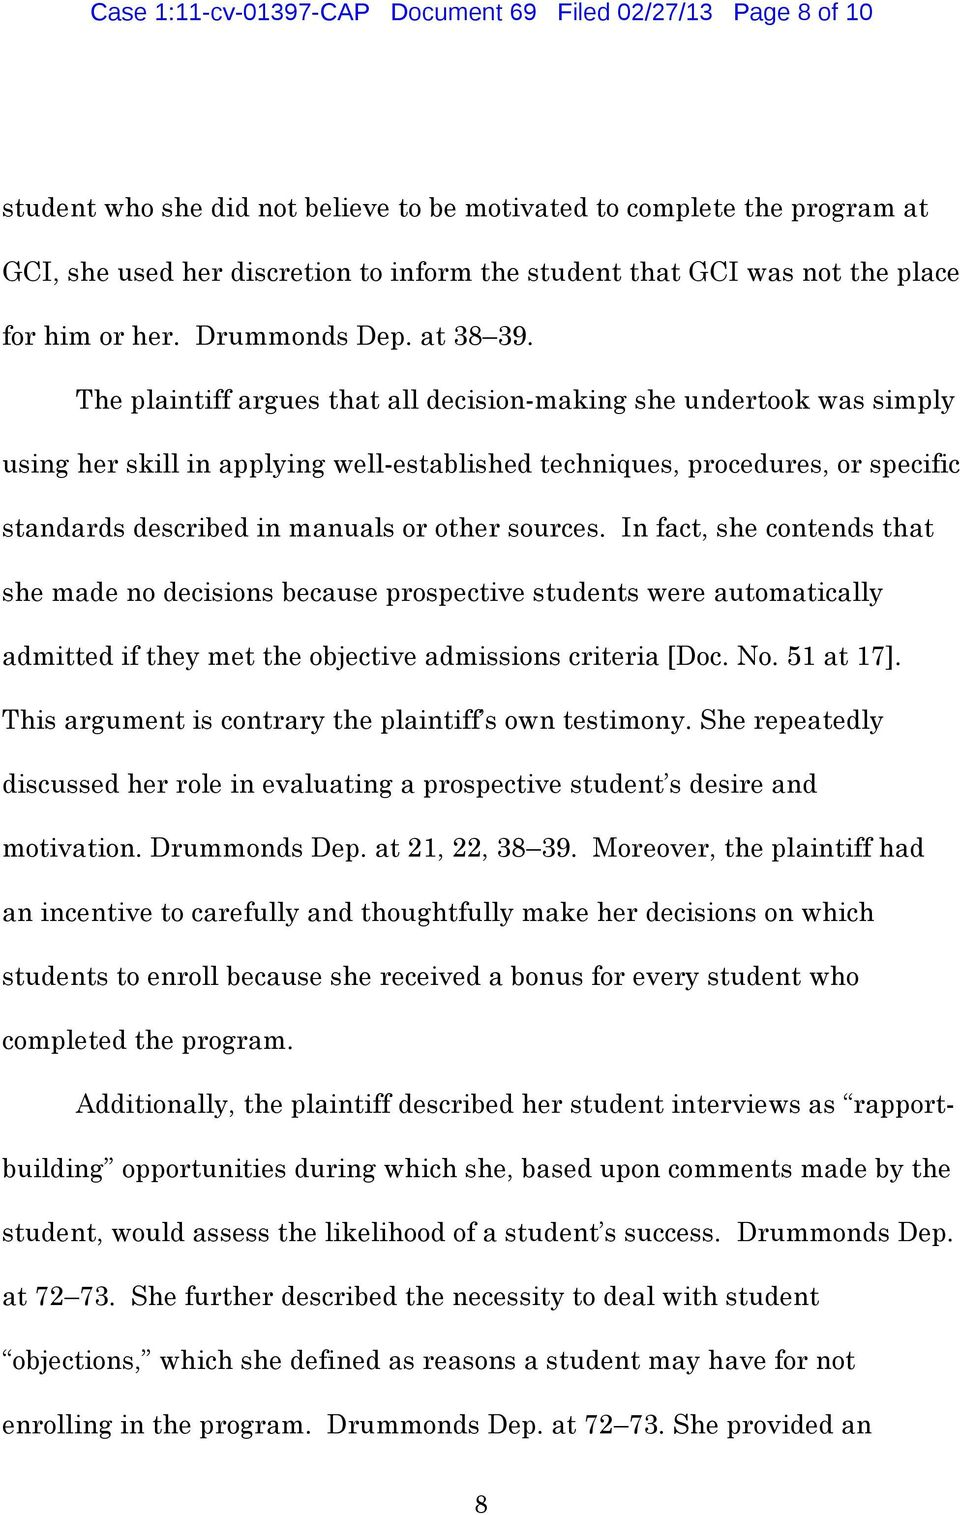 The plaintiff argues that all decision-making she undertook was simply using her skill in applying well-established techniques, procedures, or specific standards described in manuals or other sources.